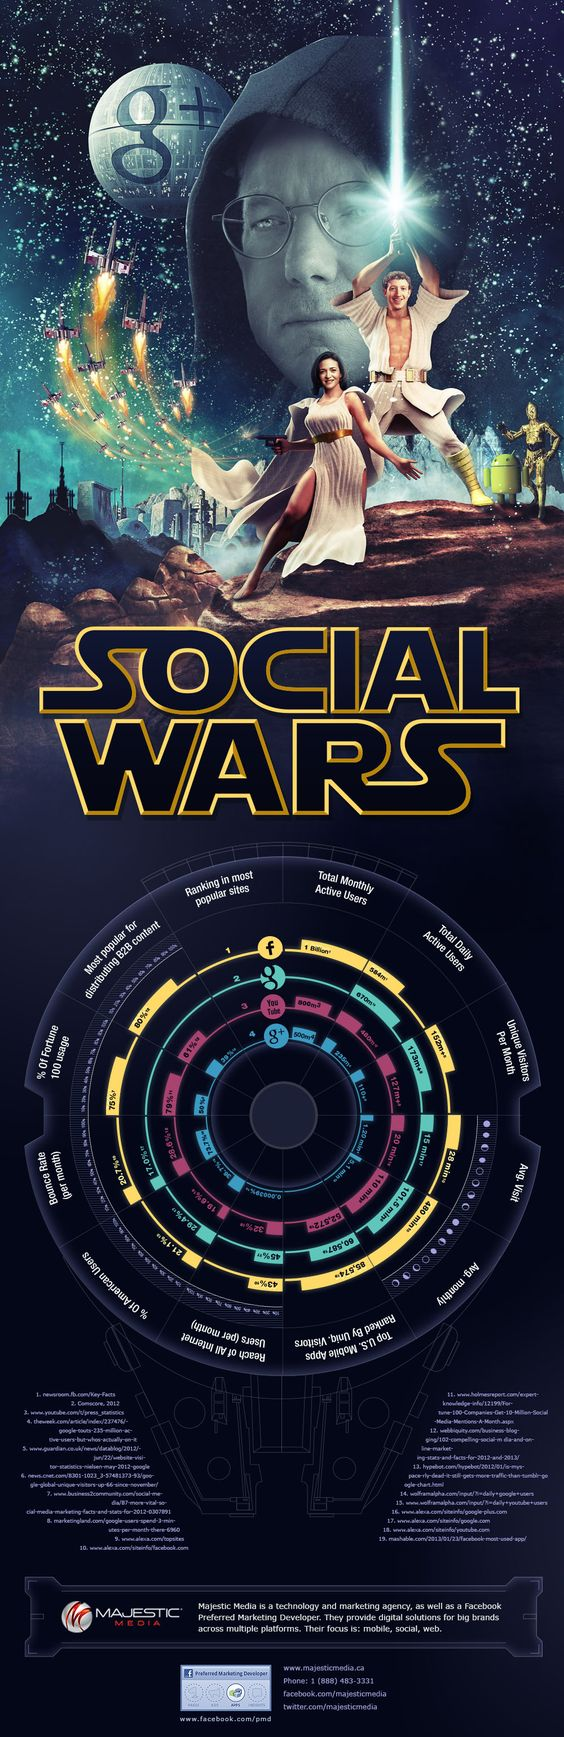 'Social Wars' Infographic Compares the Forces of #Google, #Facebook